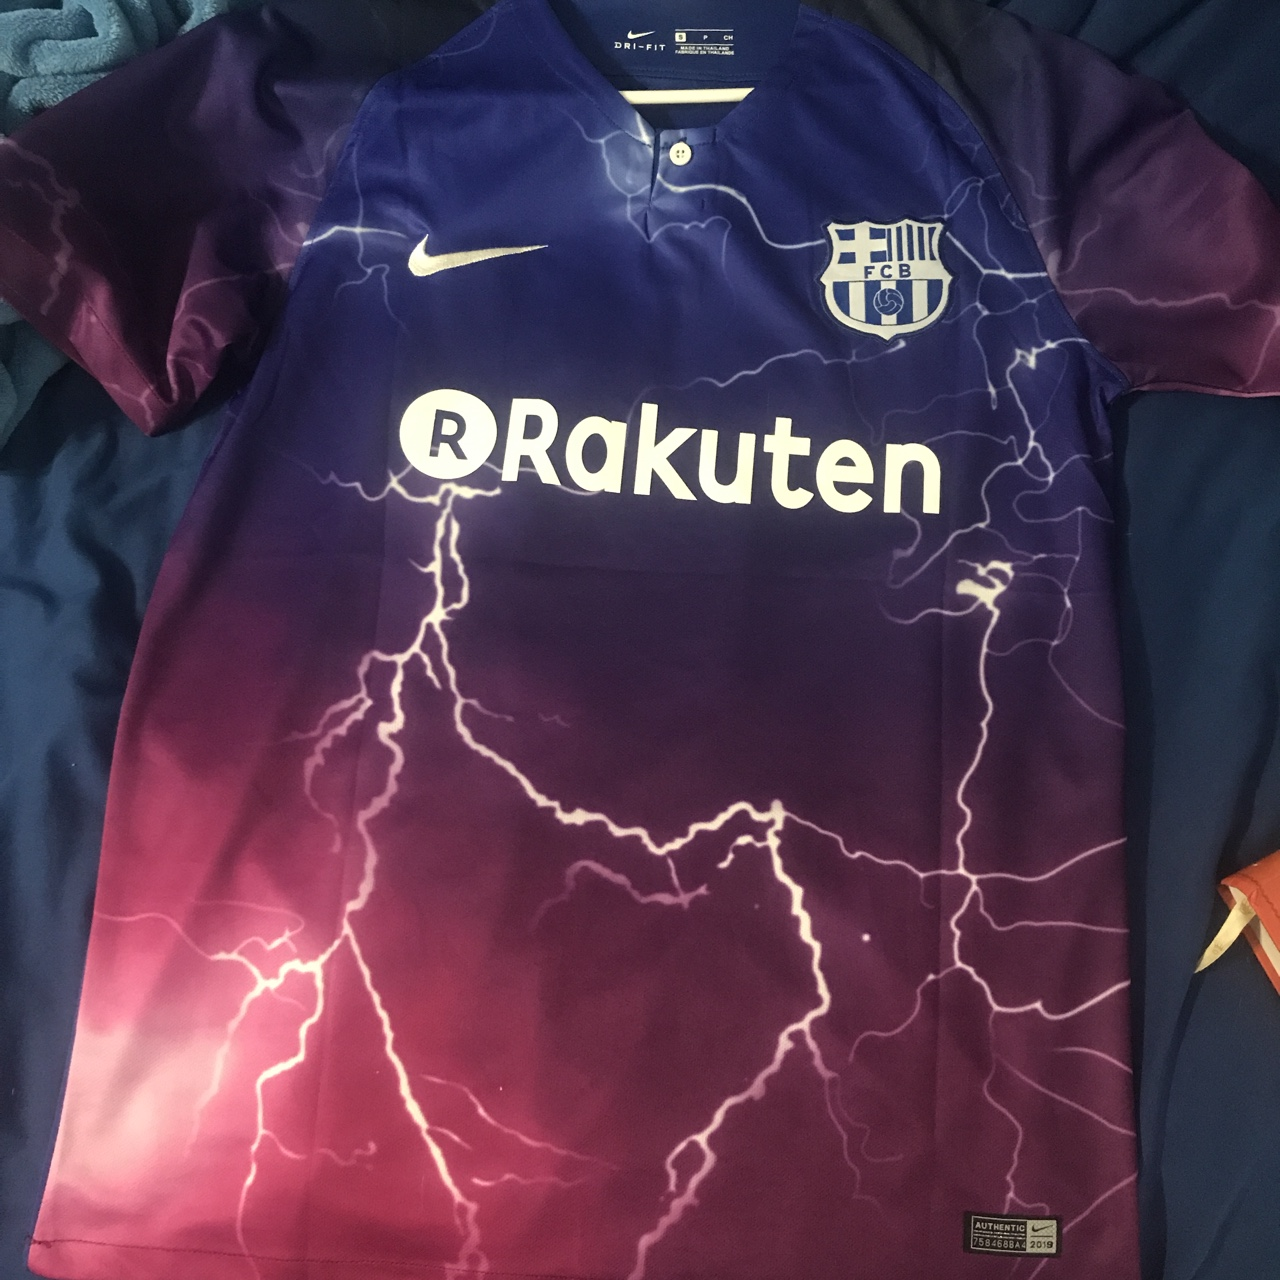 new arrivals 85ce2 c4ed5 Sexy cleanest Barcelona Nike messi jersey retail... - Depop